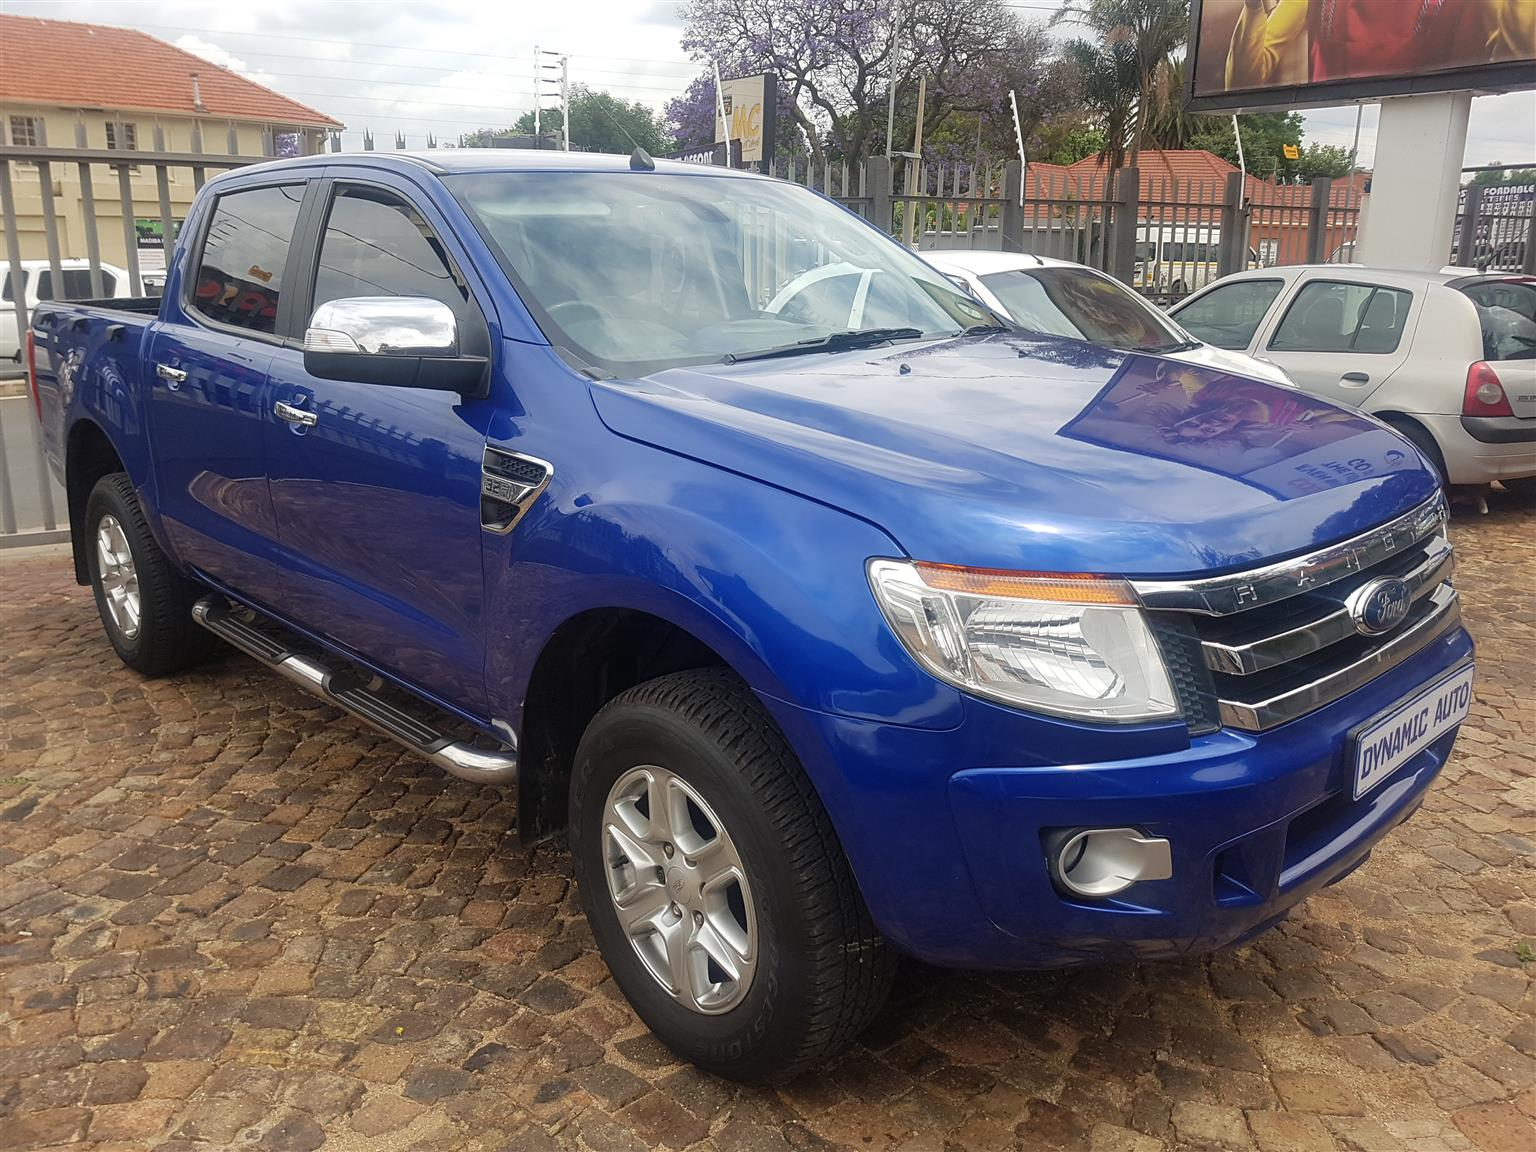 2014 Ford Ranger double cabRanger double cab